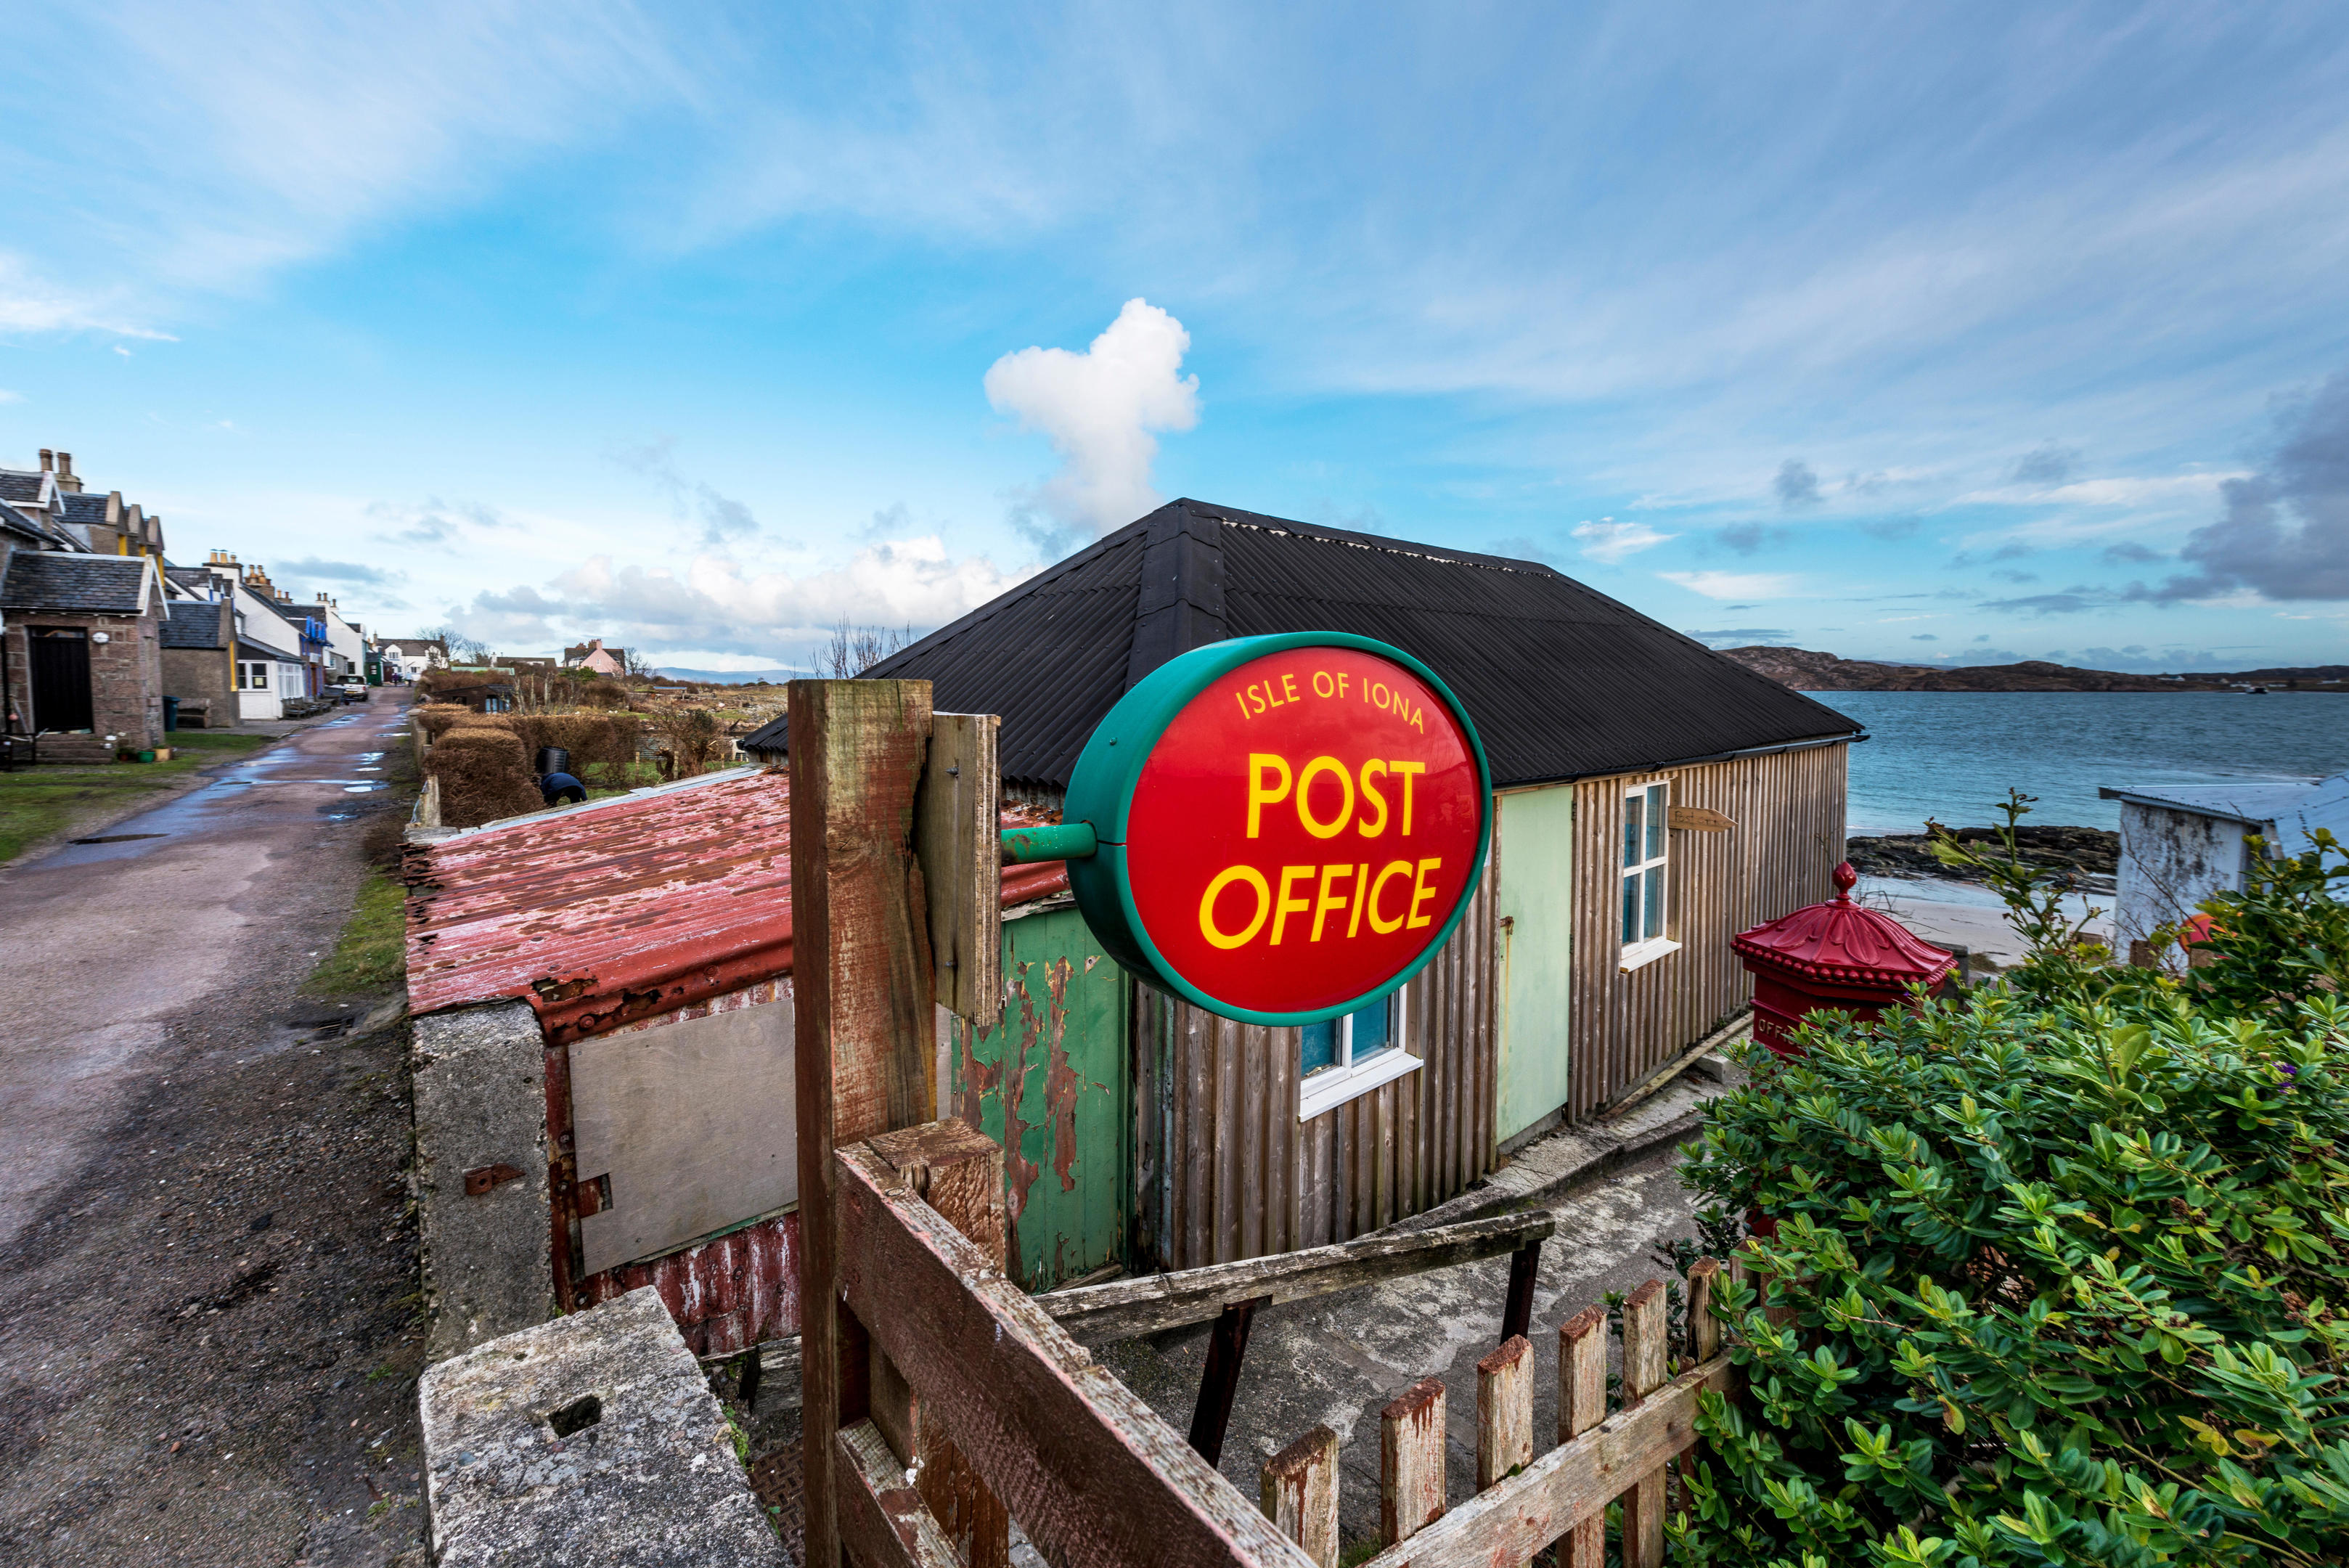 The Post Office on the Isle of Iona is on the beach in Iona's only village, Baile Mor